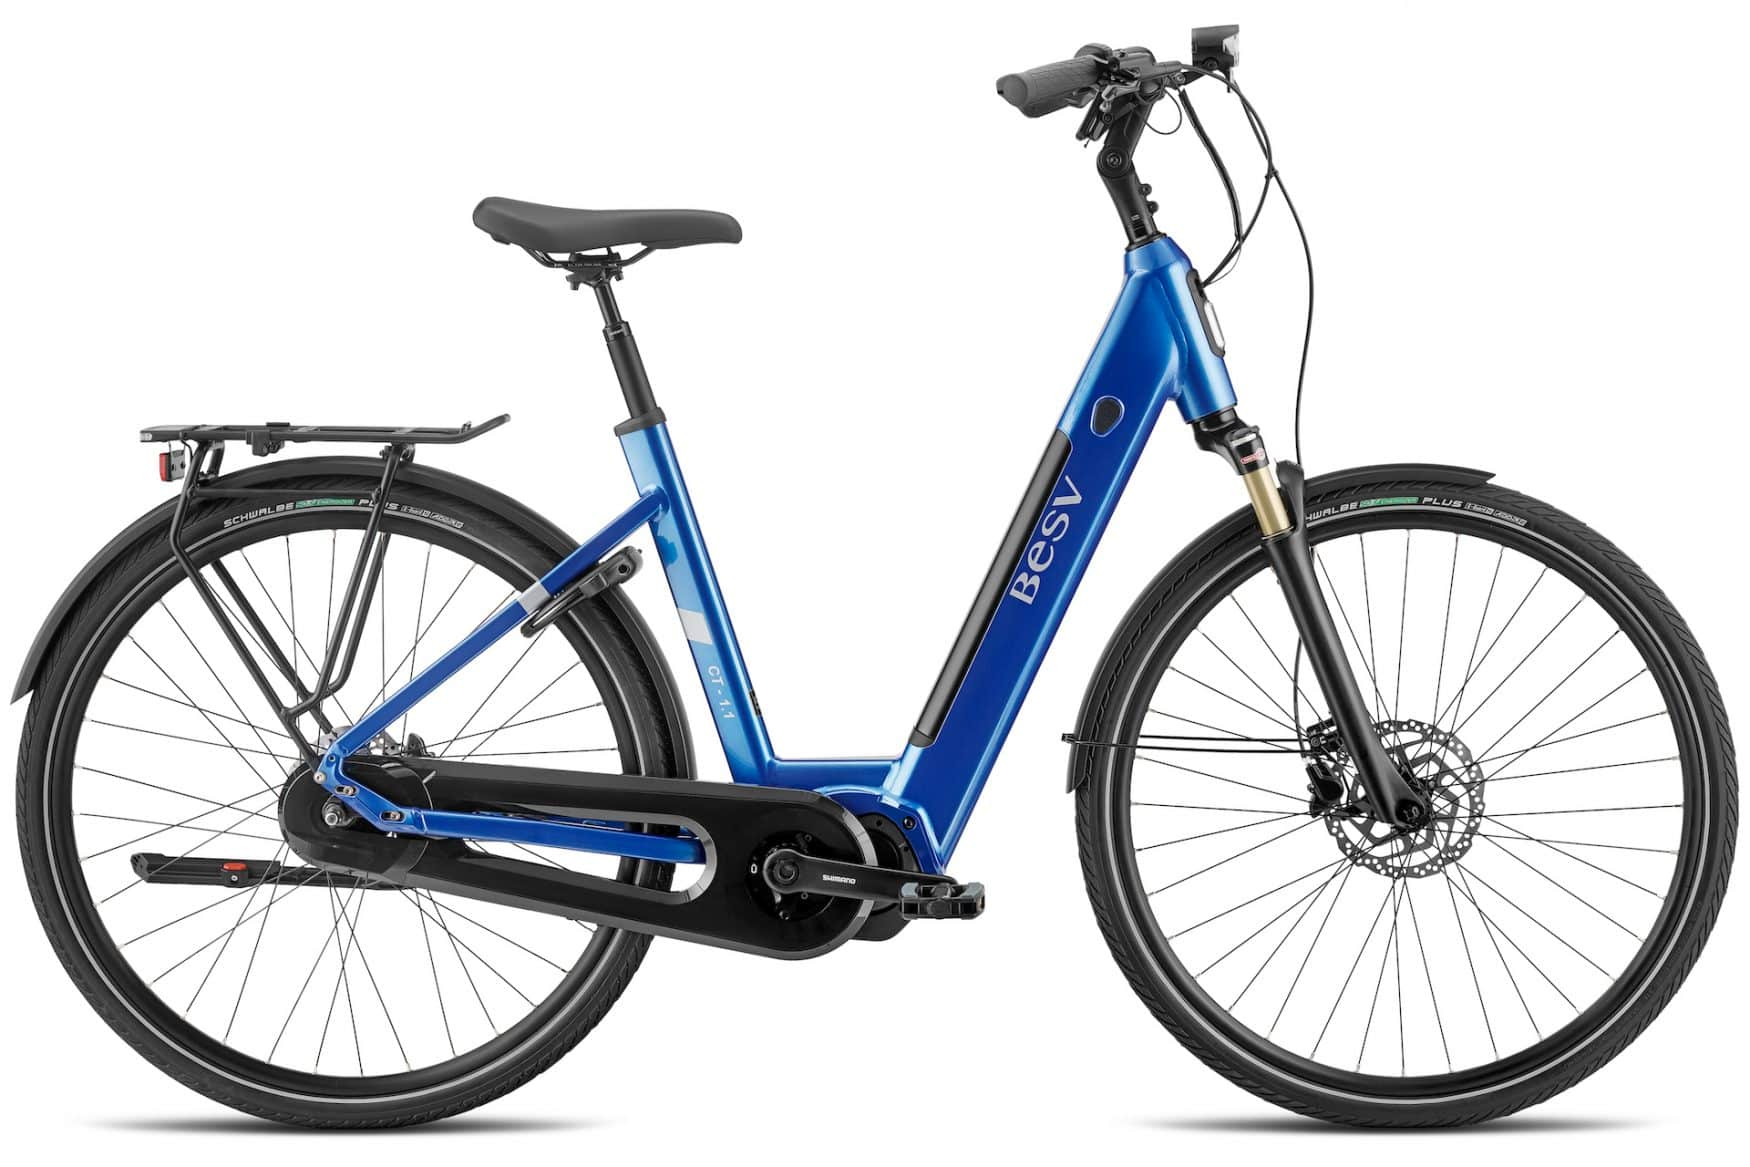 City e bike CT 1.1 2021 BESV CT 1.1 Low Step|BESV